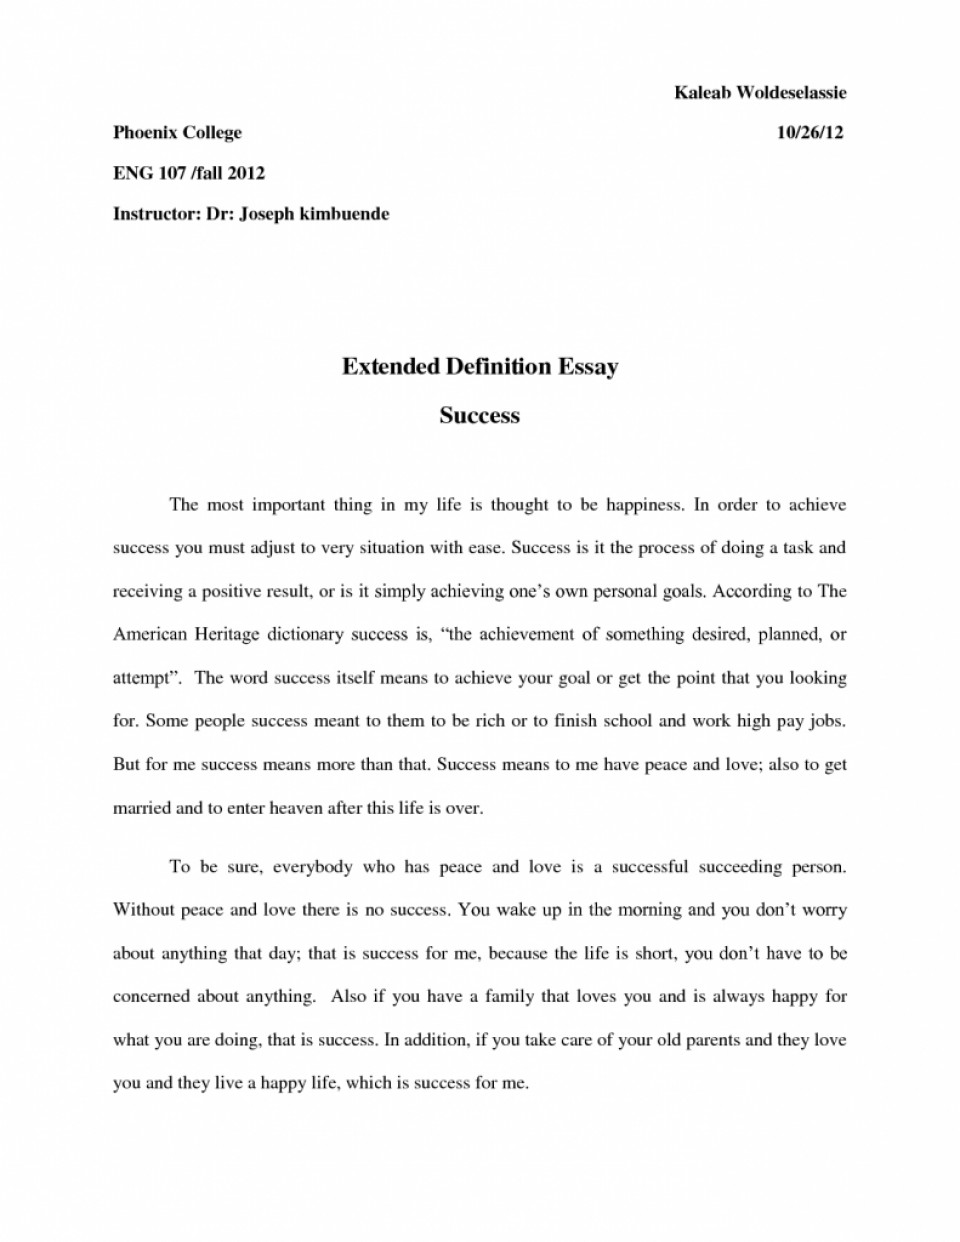 002 Best Soluti Success Definition Essays Perfect Invoice Template Word 791x1024 Extended On Impressive Essay 960